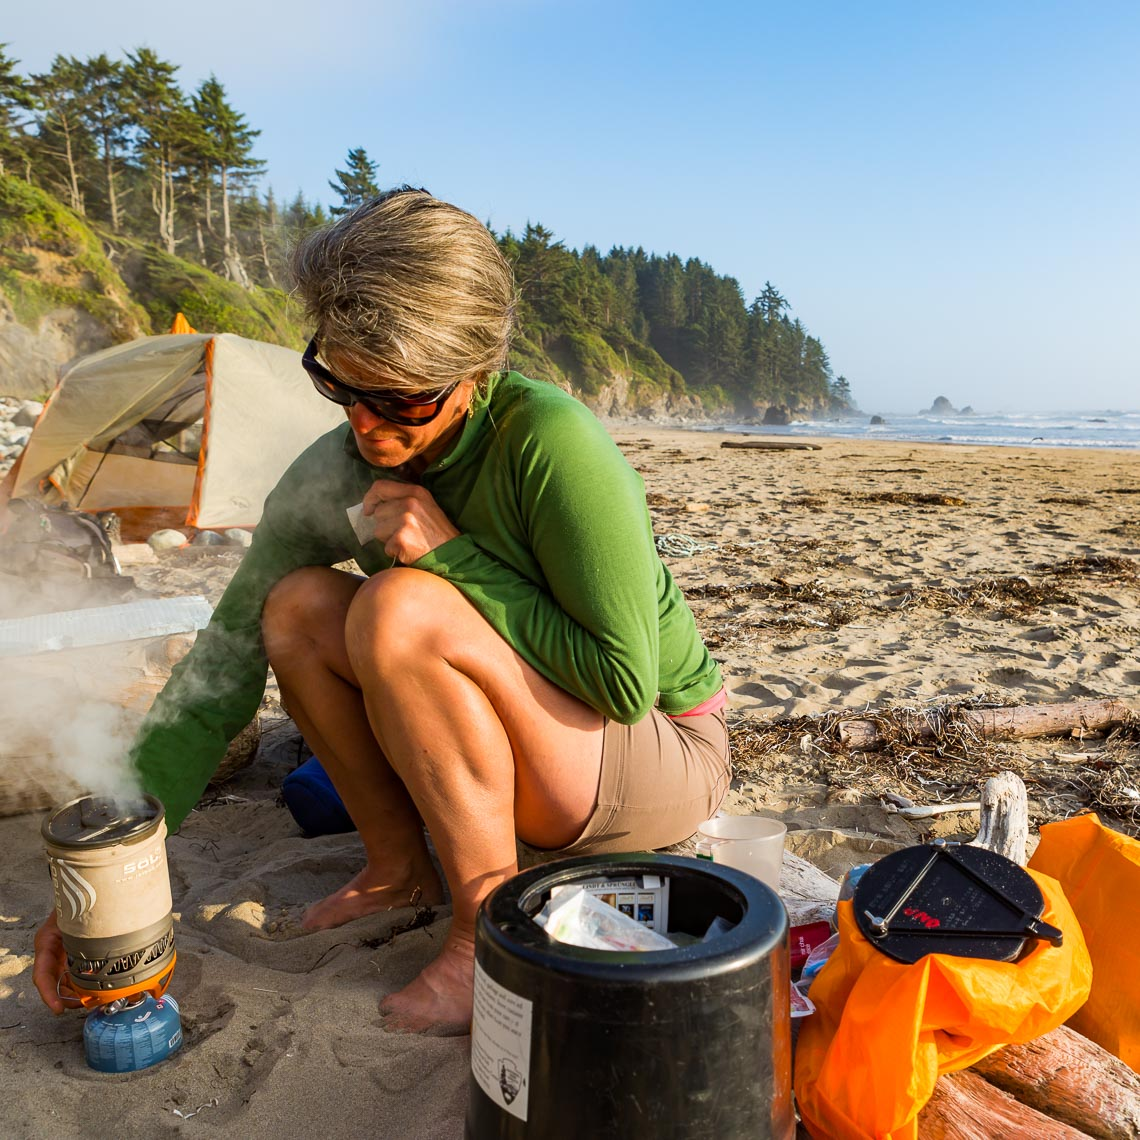 Beach Camp Washington Coast Backpack Trip | Michael DeYoung